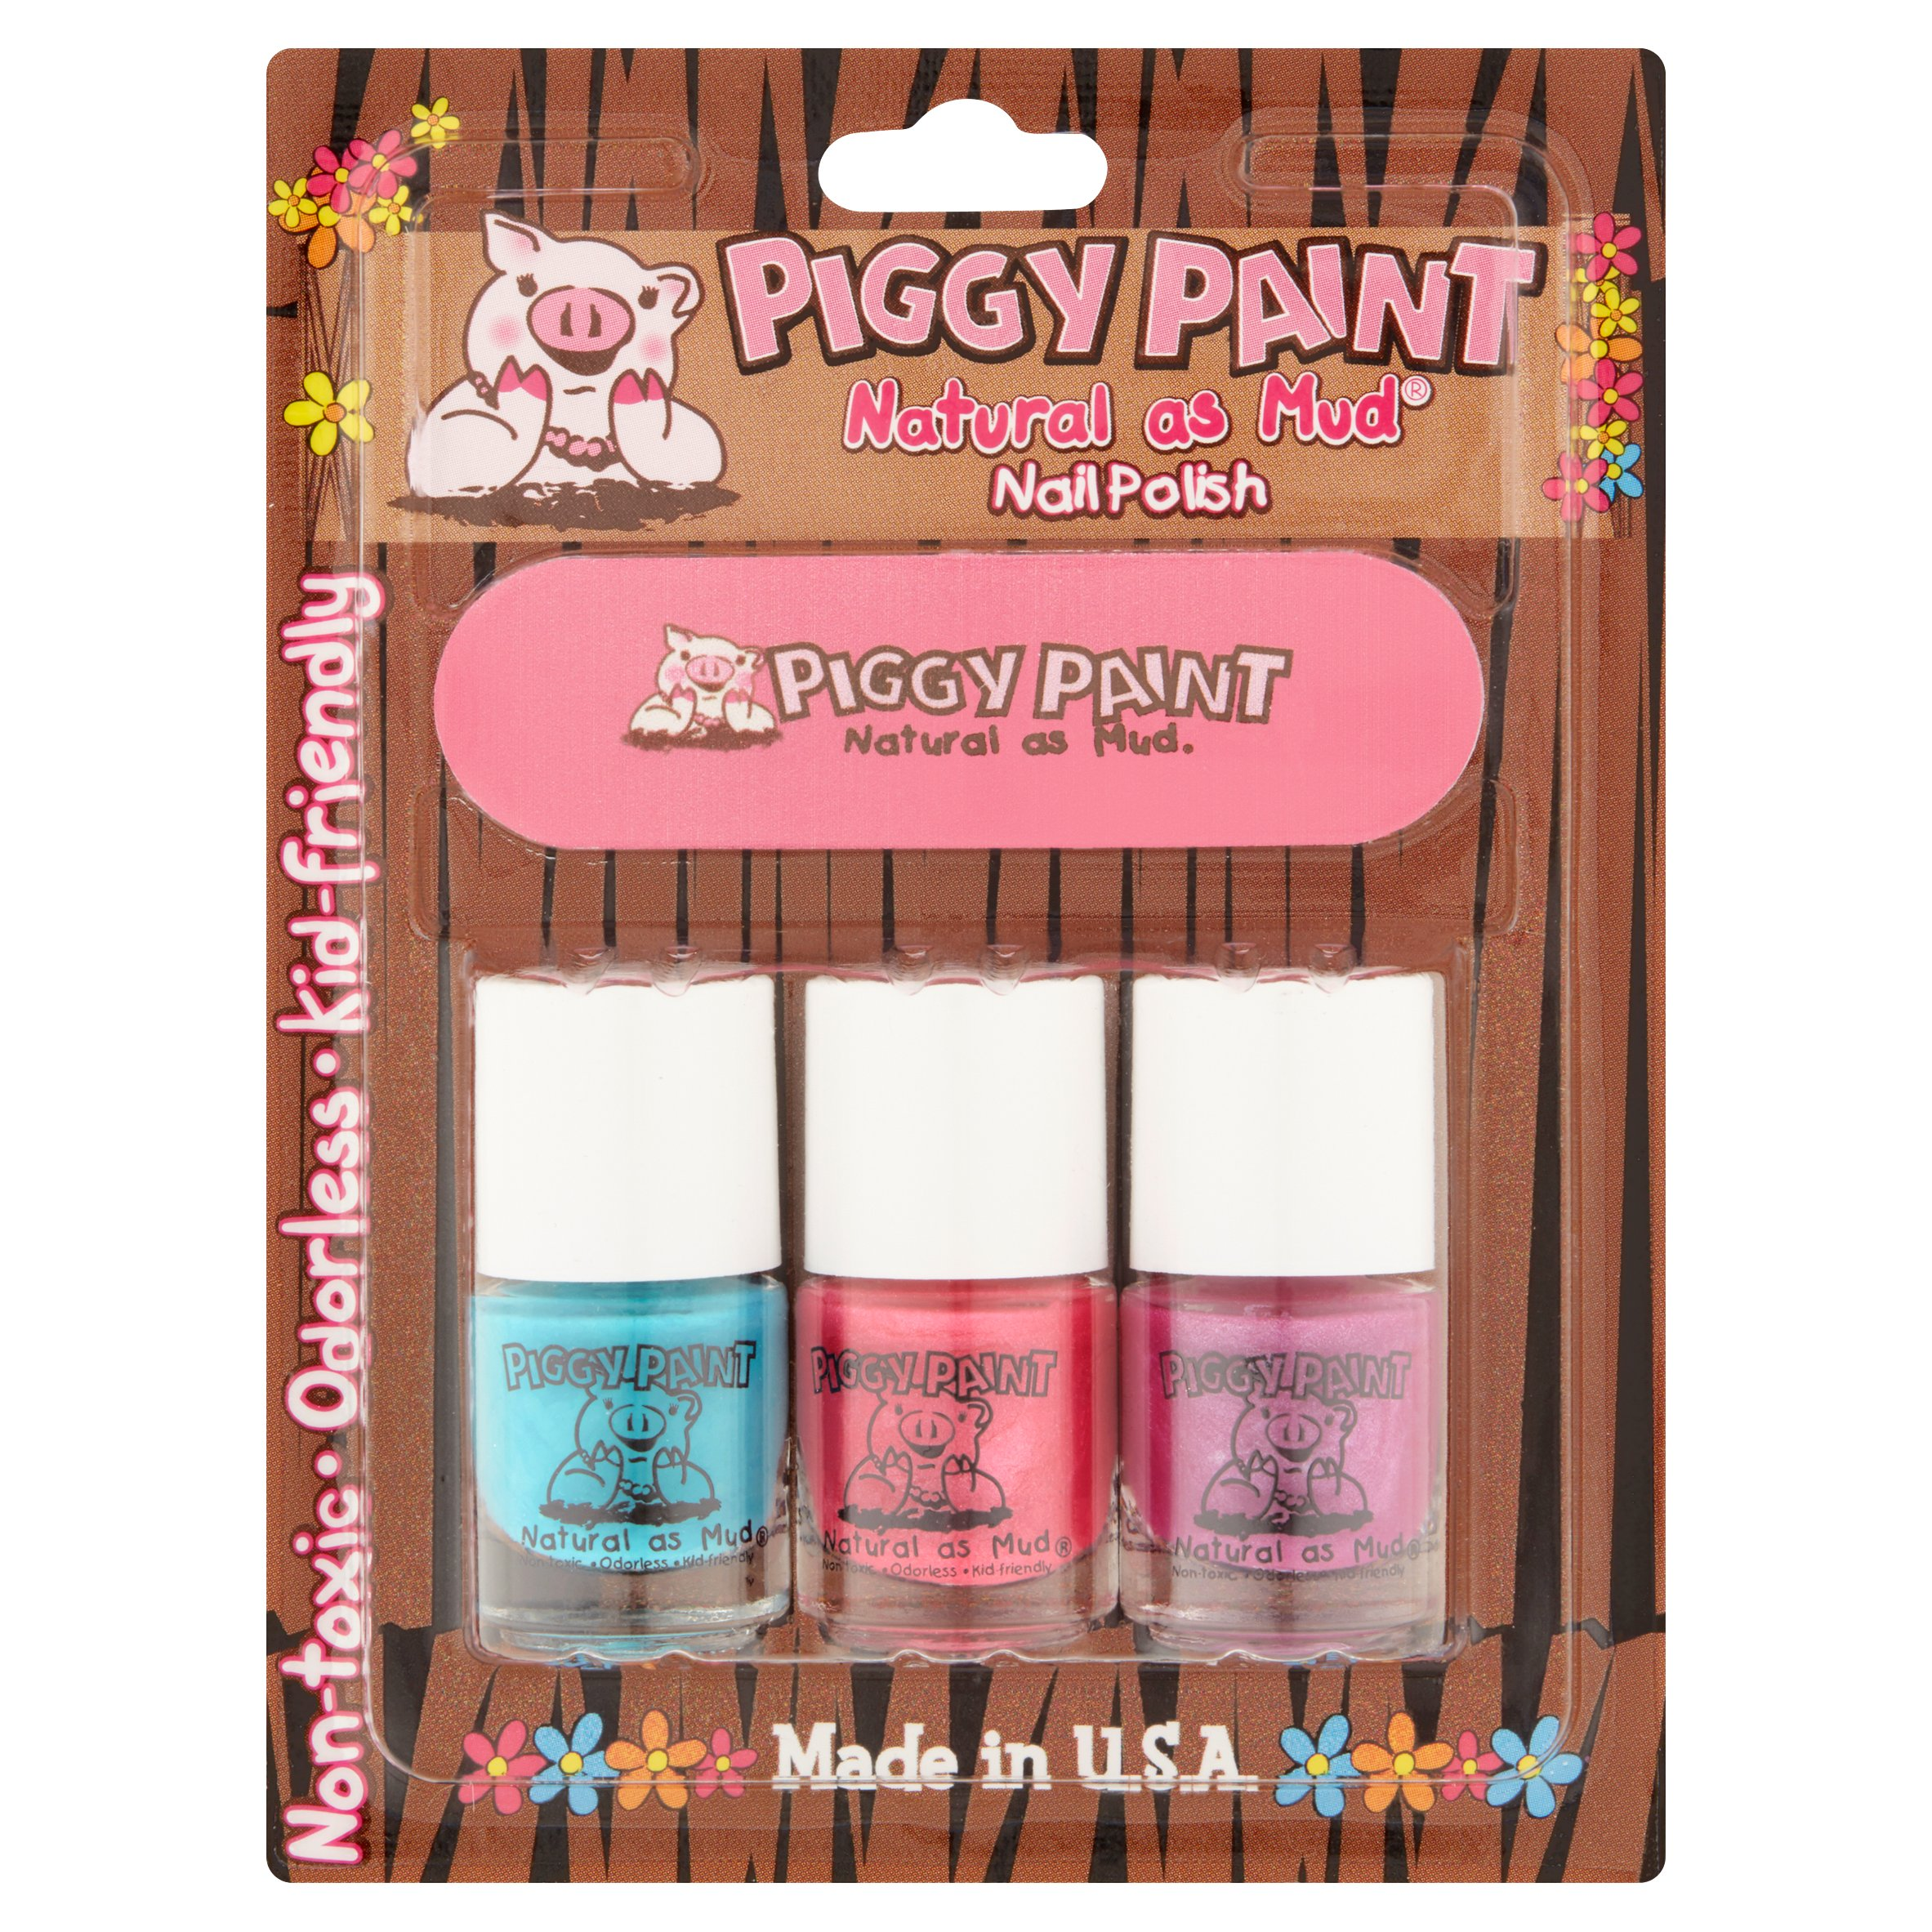 Piggy Paint Natural as Mud Sea-Quin / Forever Fancy / Girls Rule! Nail Polish .36 fl. oz.